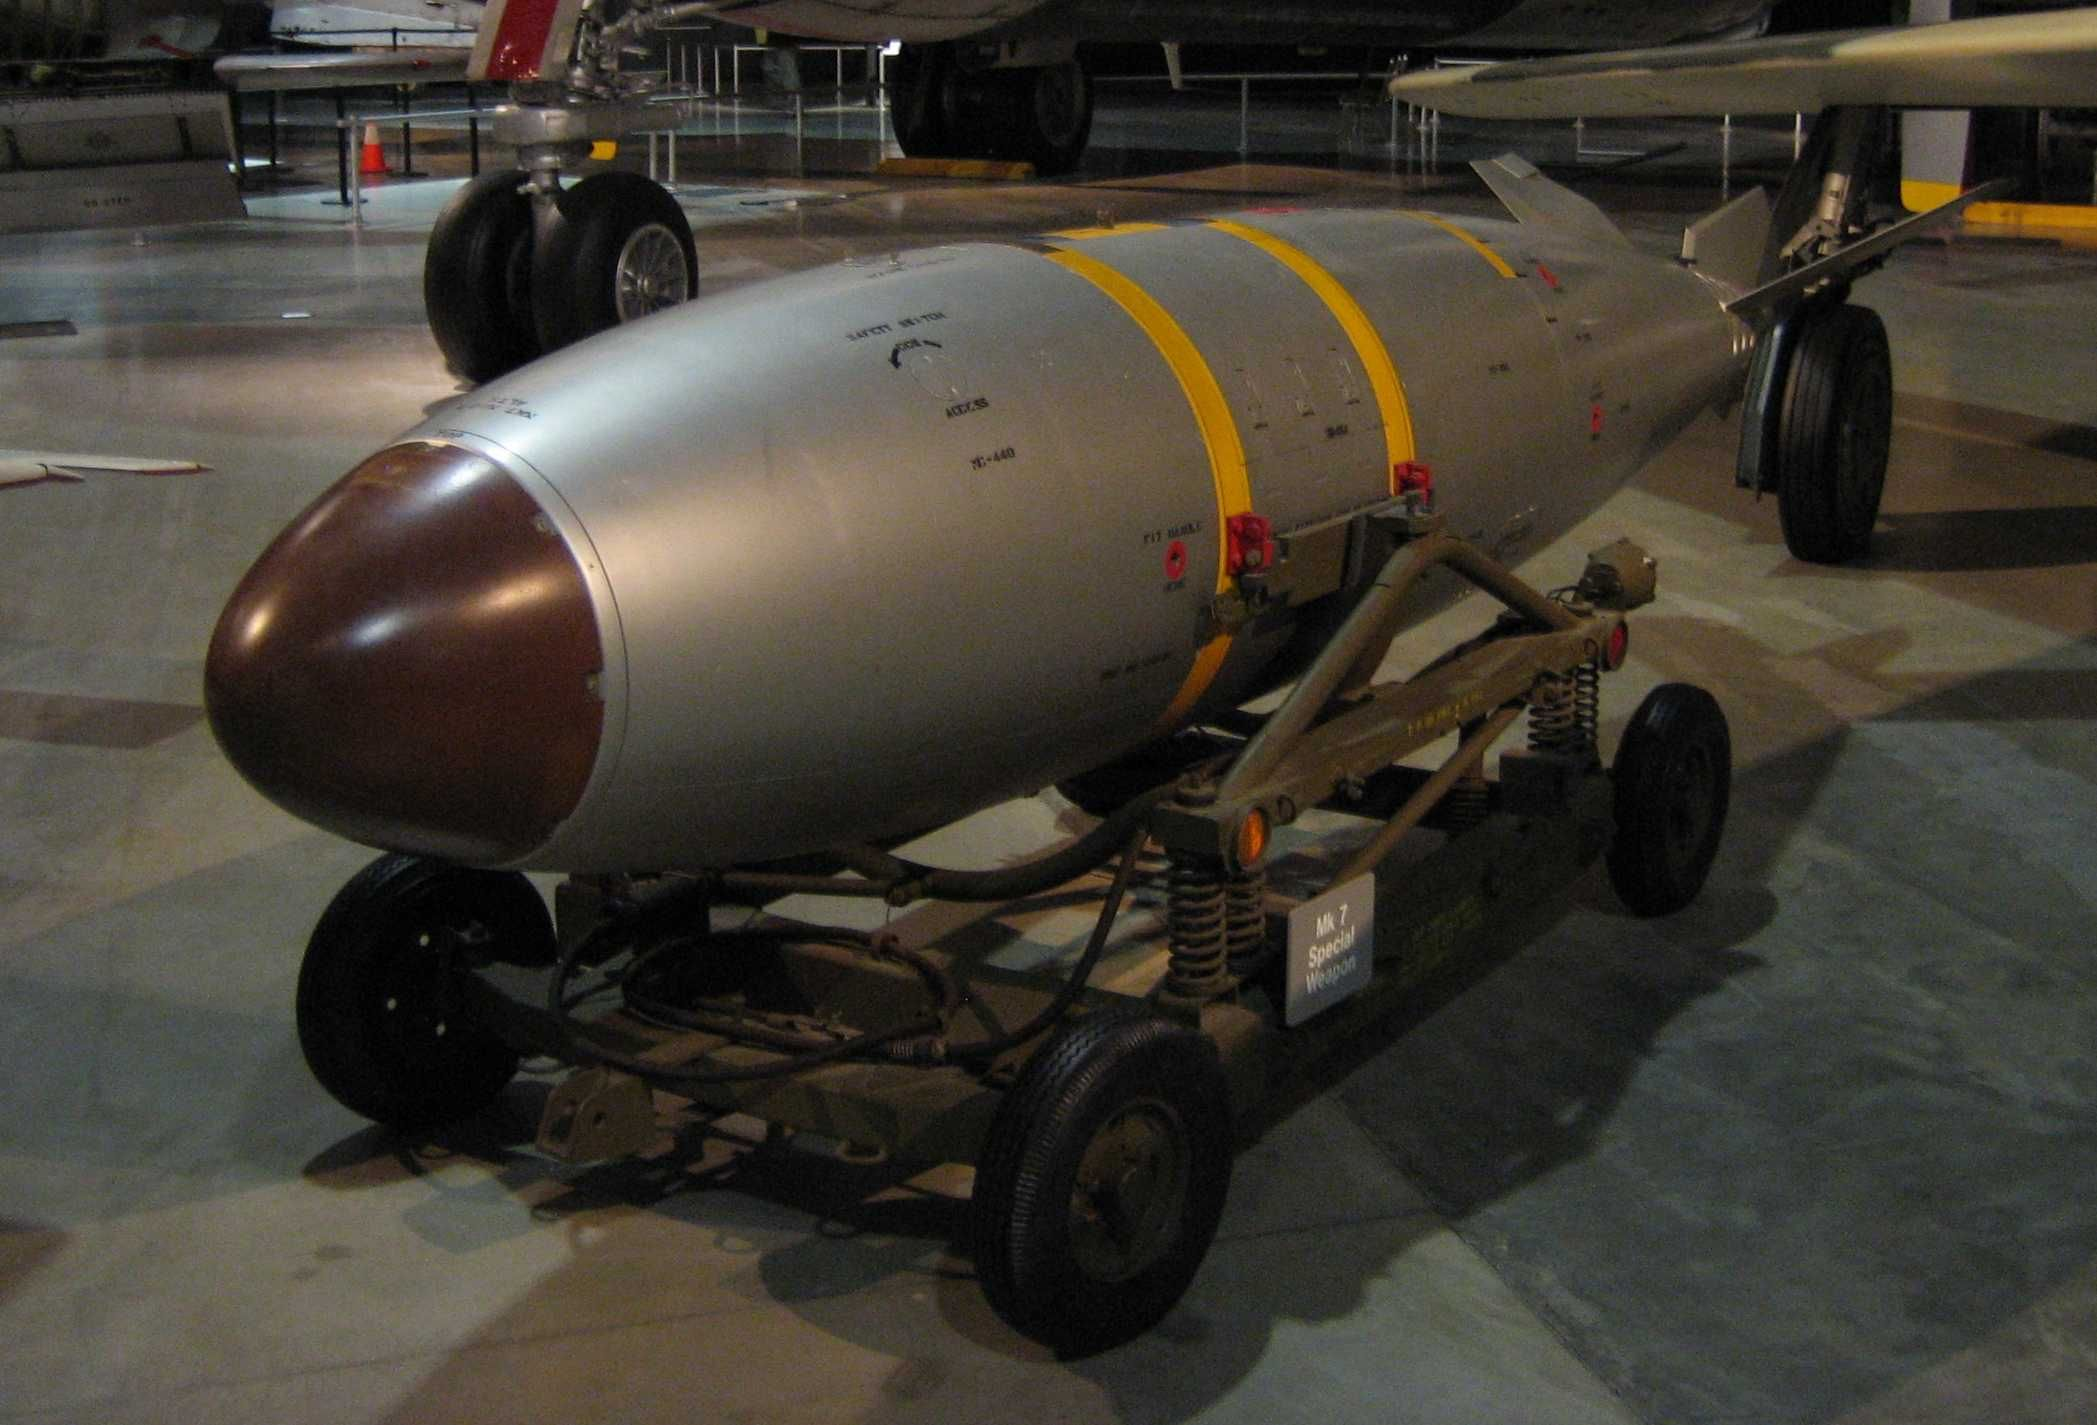 Ever wonder what a nuclear bomb looks like? This one is a